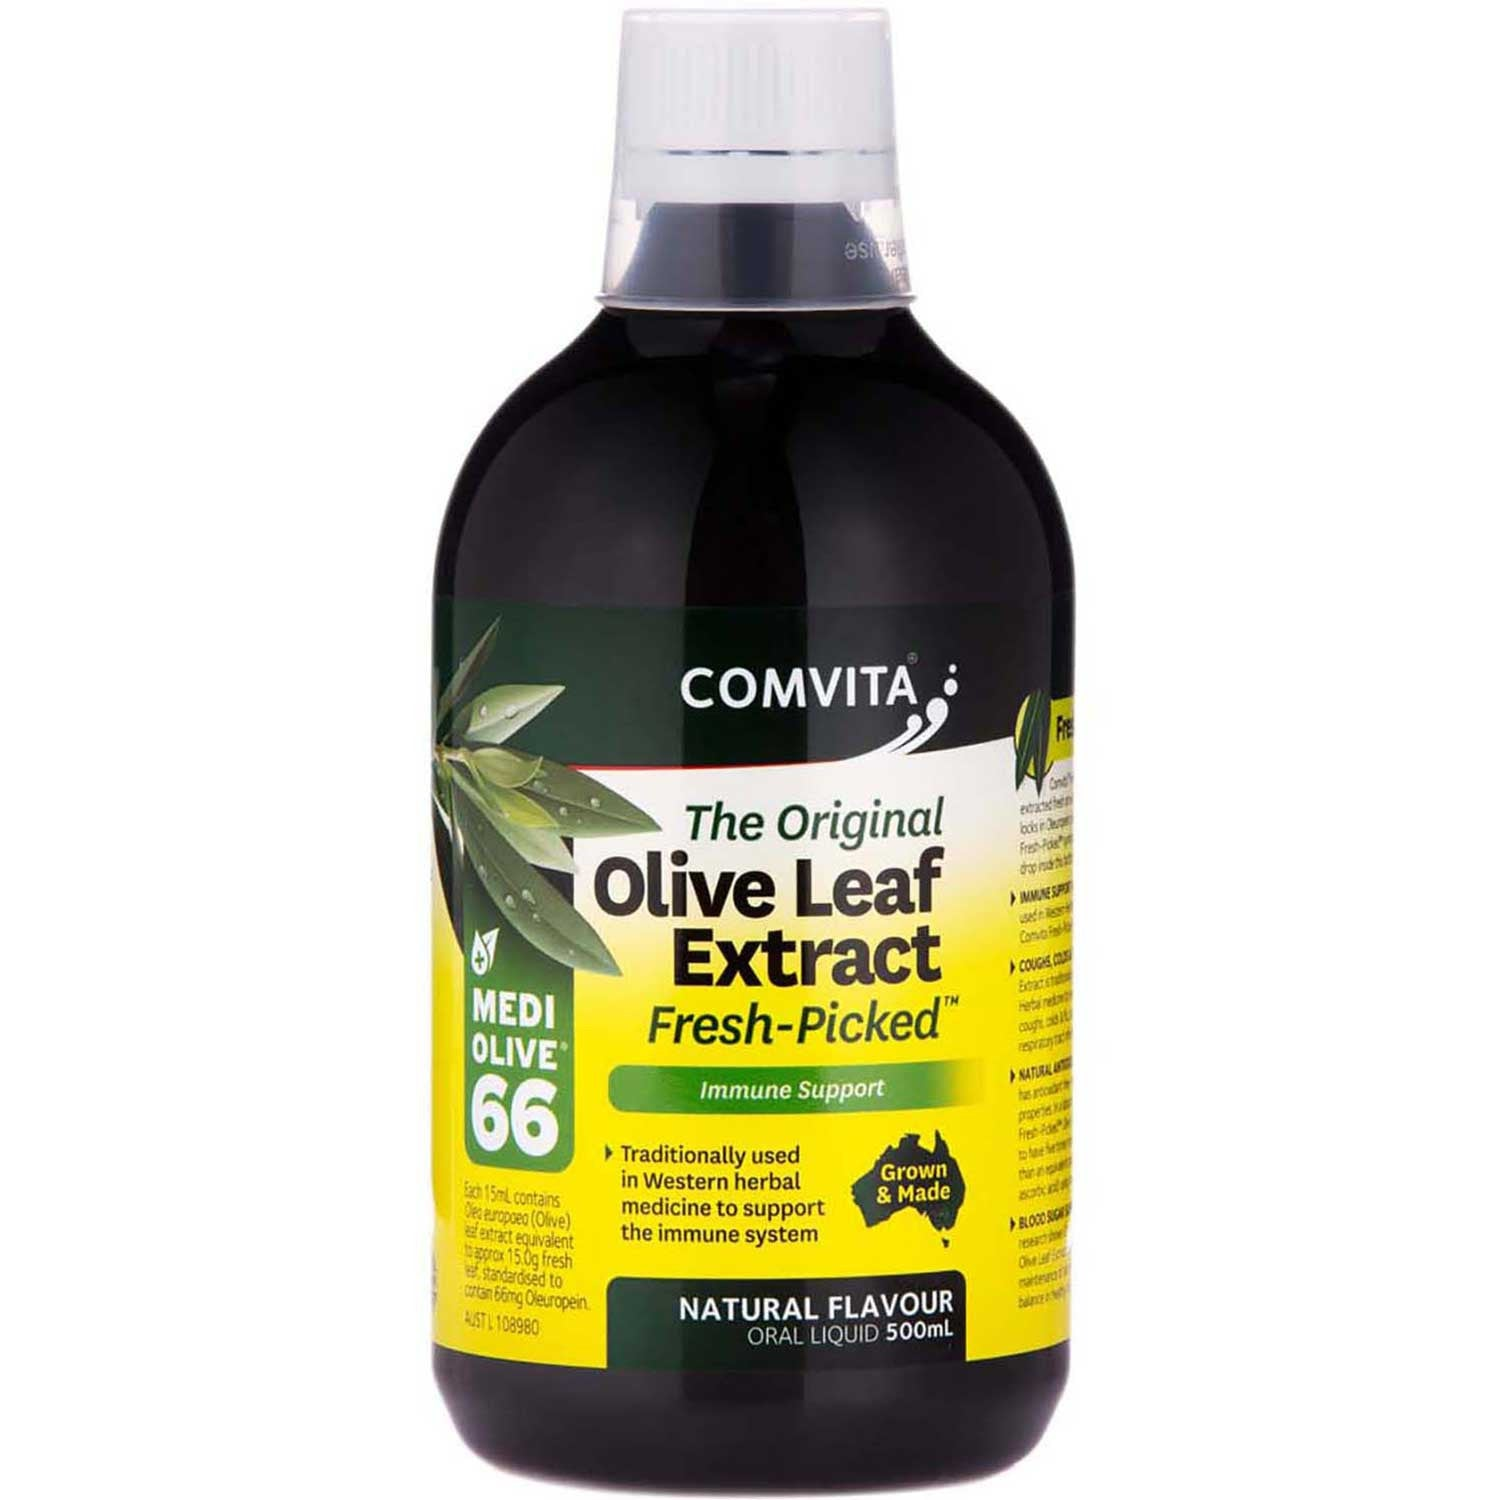 Comvita Olive Leaf Extract - Natural Flavor, 500 ml.